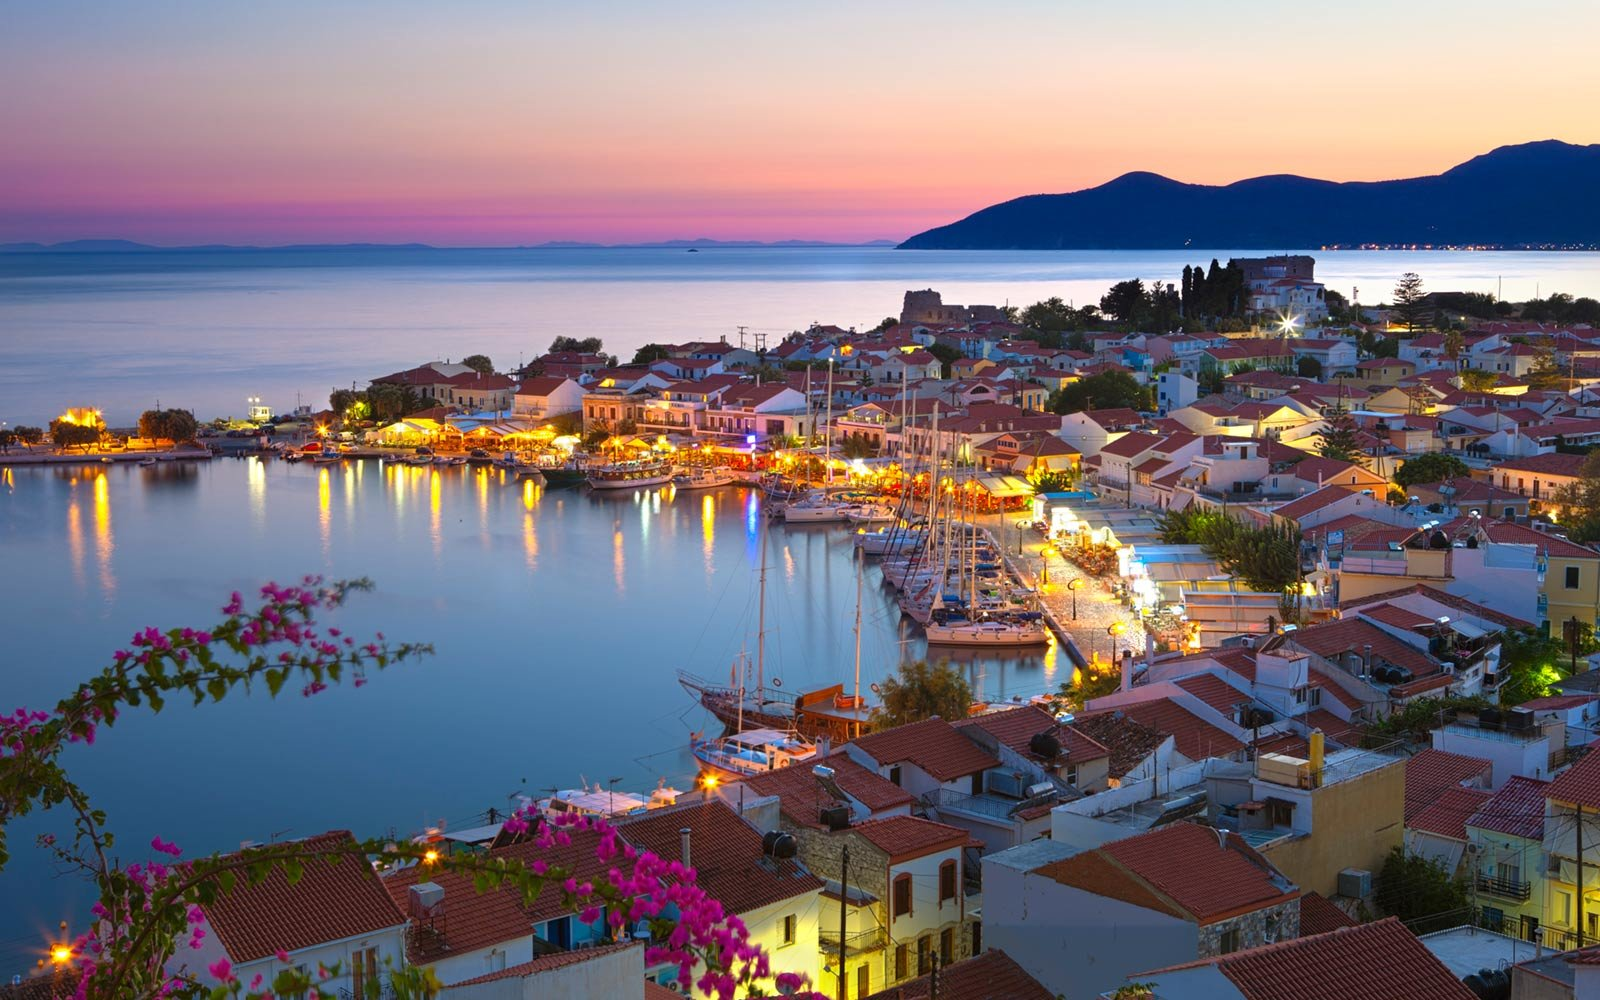 Pythagorion, Samos, Aegean Islands, Greece